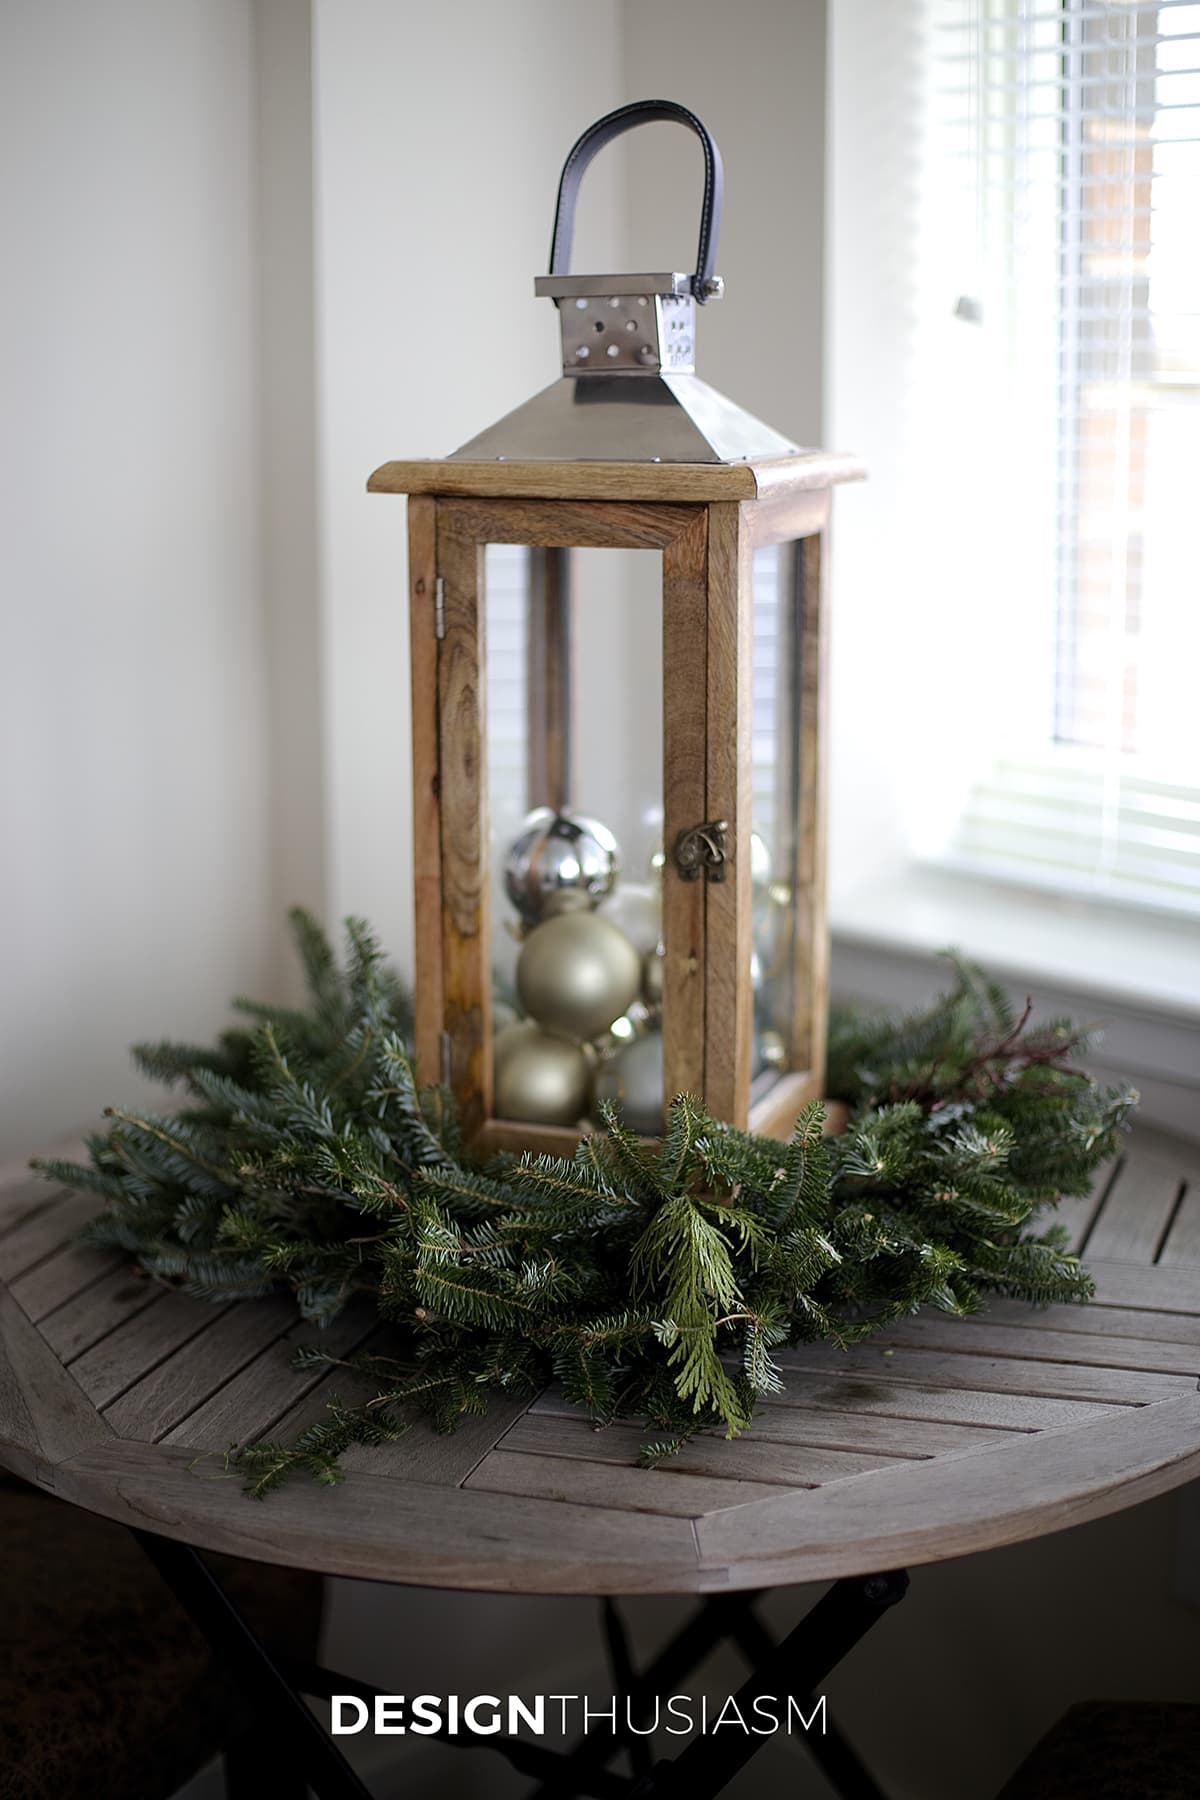 Holiday Decorating Ideas for a Small Apartment | Designthusiasm.com